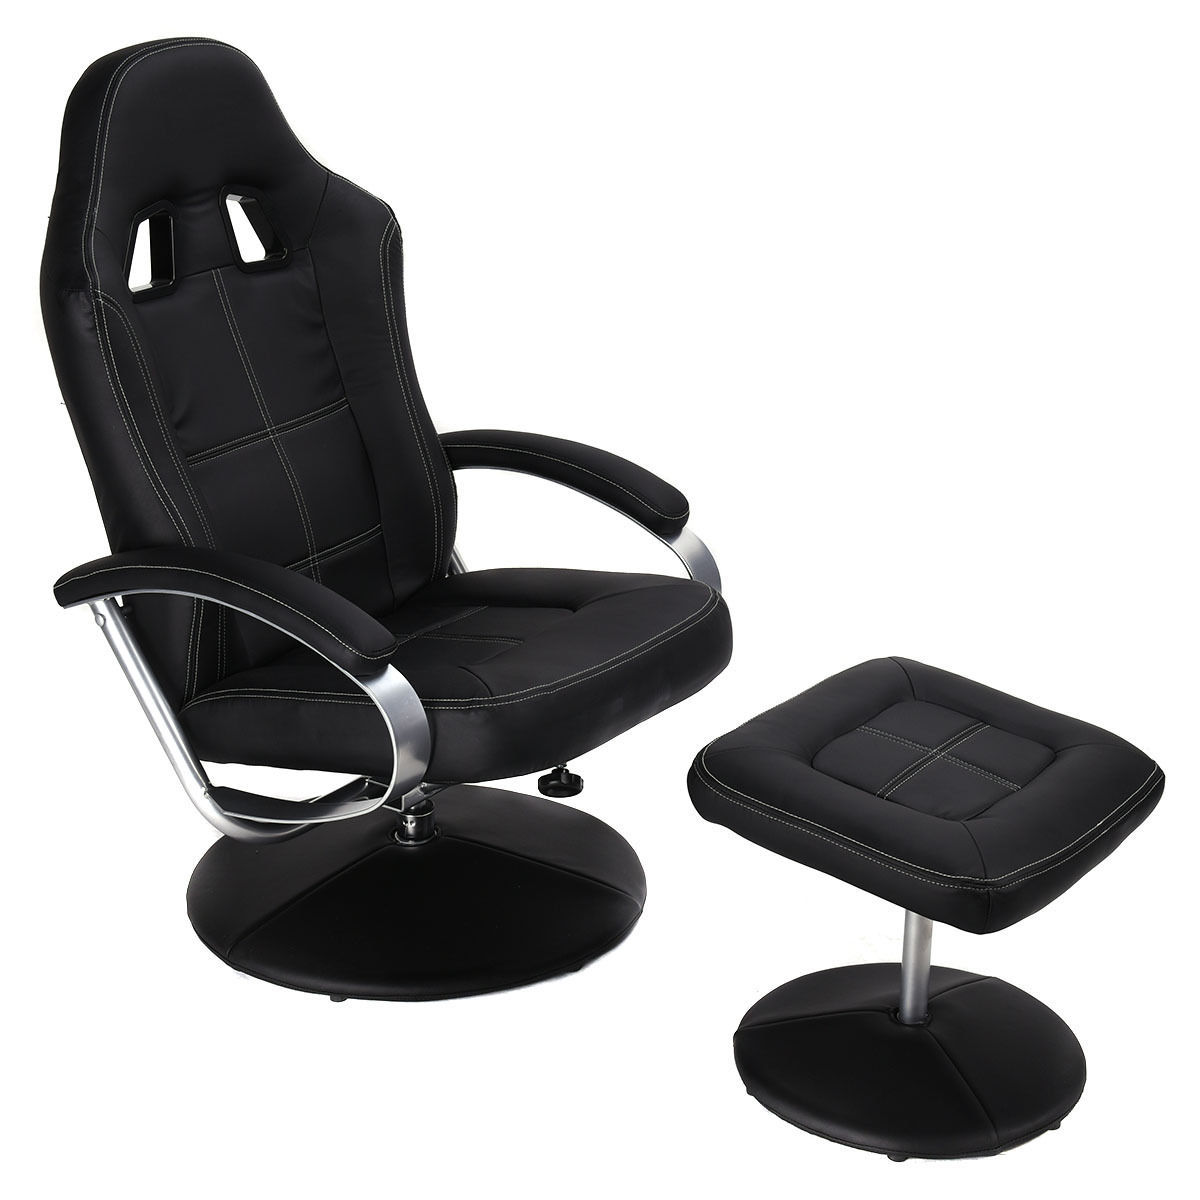 Costway Executive Pu Leather Racing Style Bucket Seat Chair Leisure  Recliner W/ Ottoman   Walmart.com